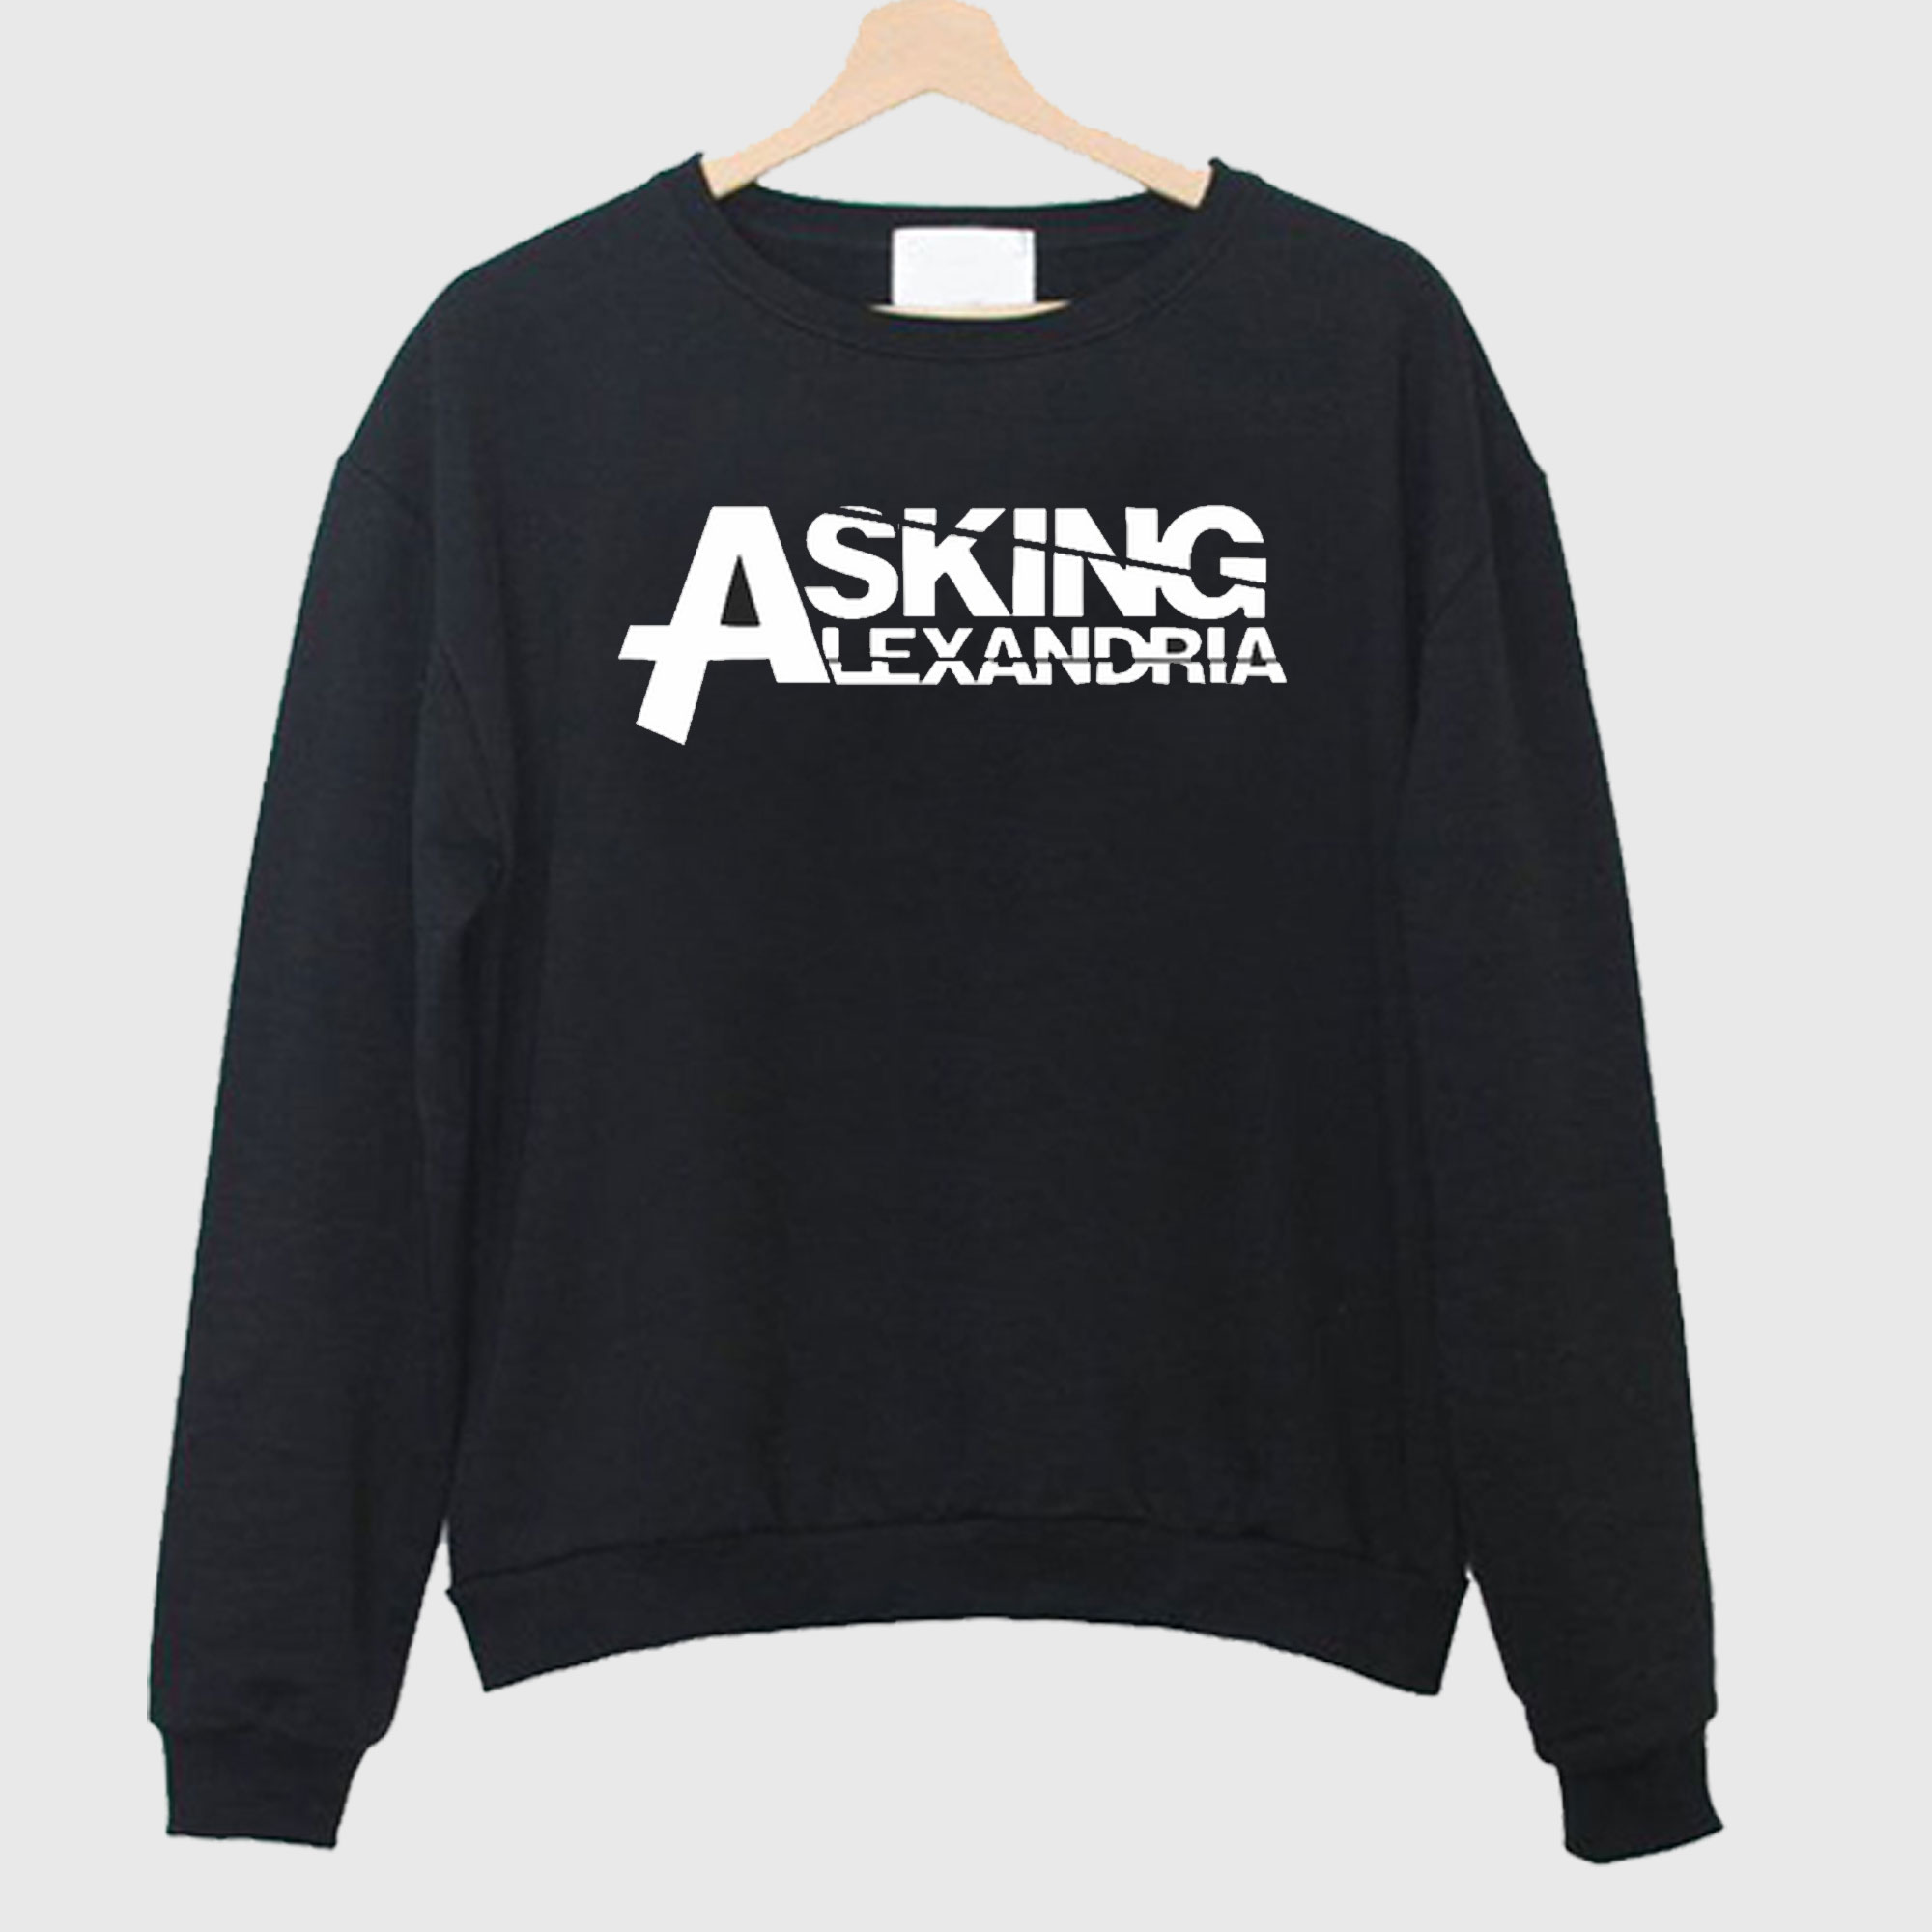 Asking Alexadria Sweatshirt